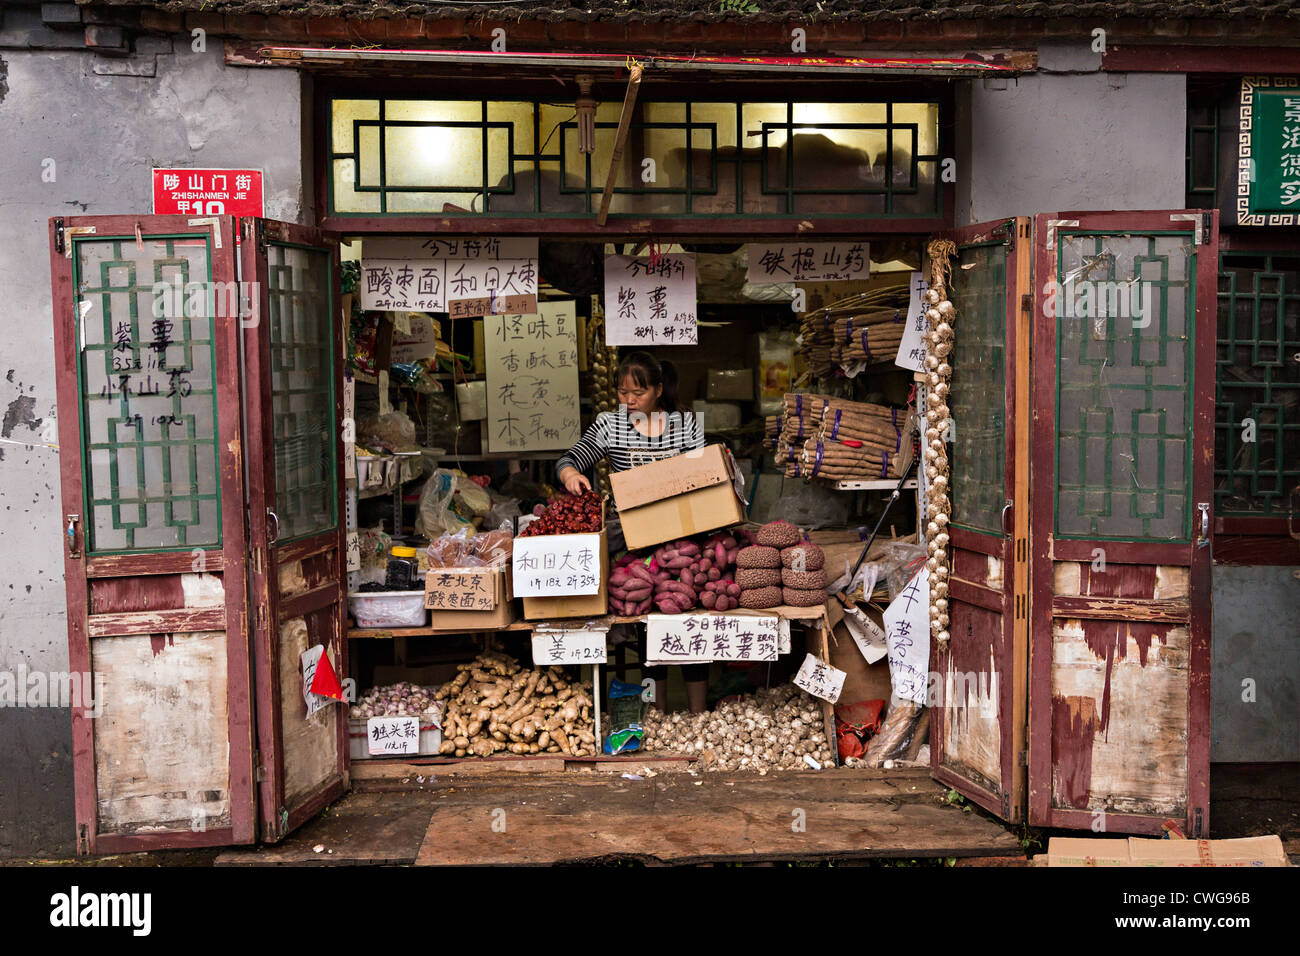 A woman works in her traditional shop selling root vegatables along a hutong in Beijing, China - Stock Image